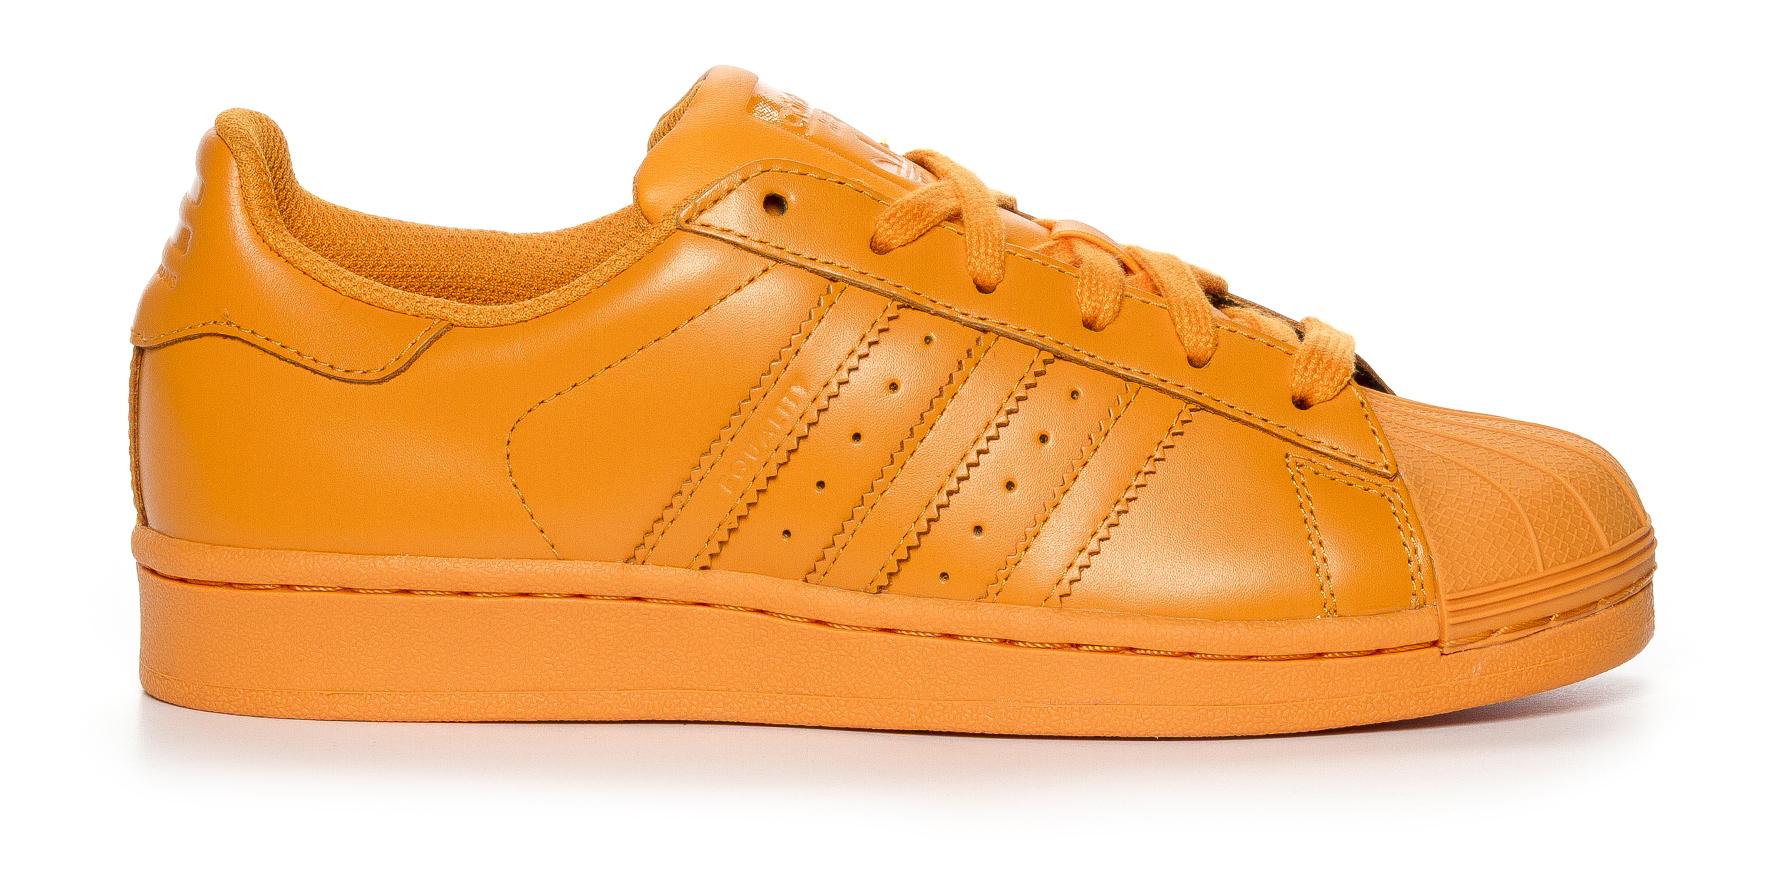 adidas shoes oslo, adidas originals Topanga Sneakers Oransje